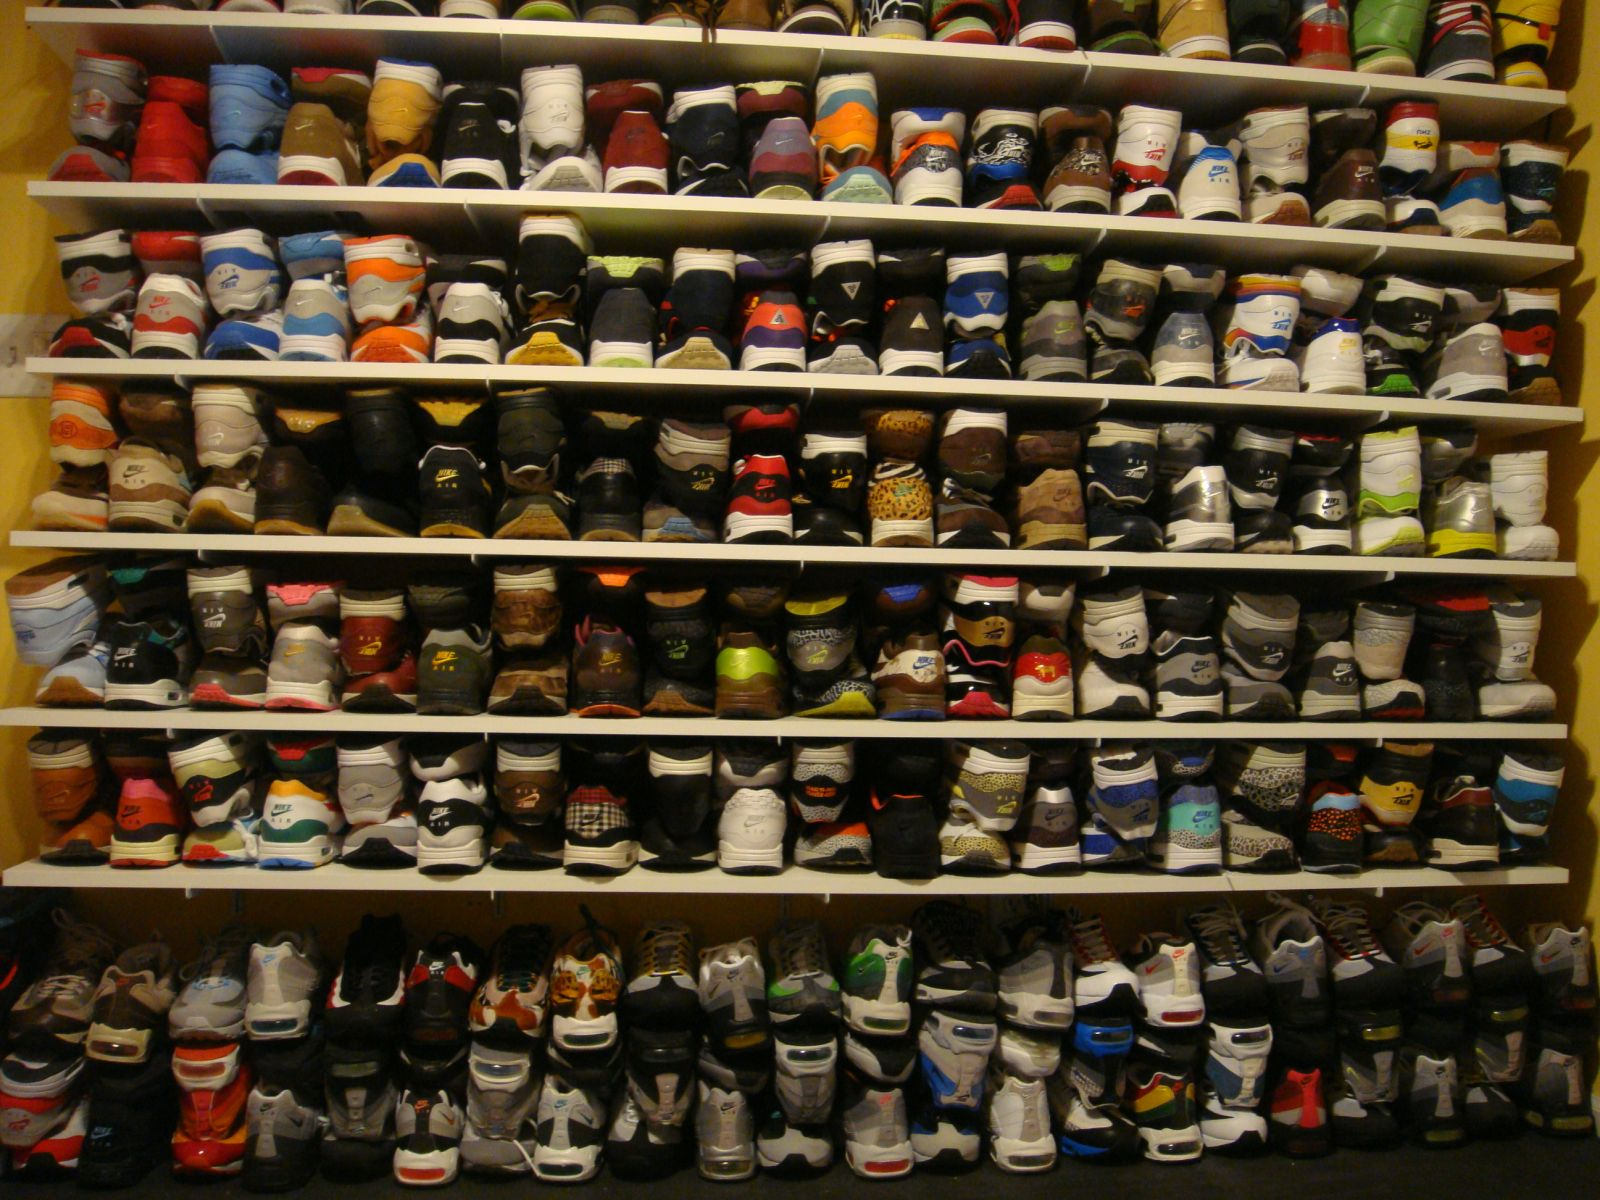 20 Of The Most Epic Sneaker Collection Photos You Ll Ever